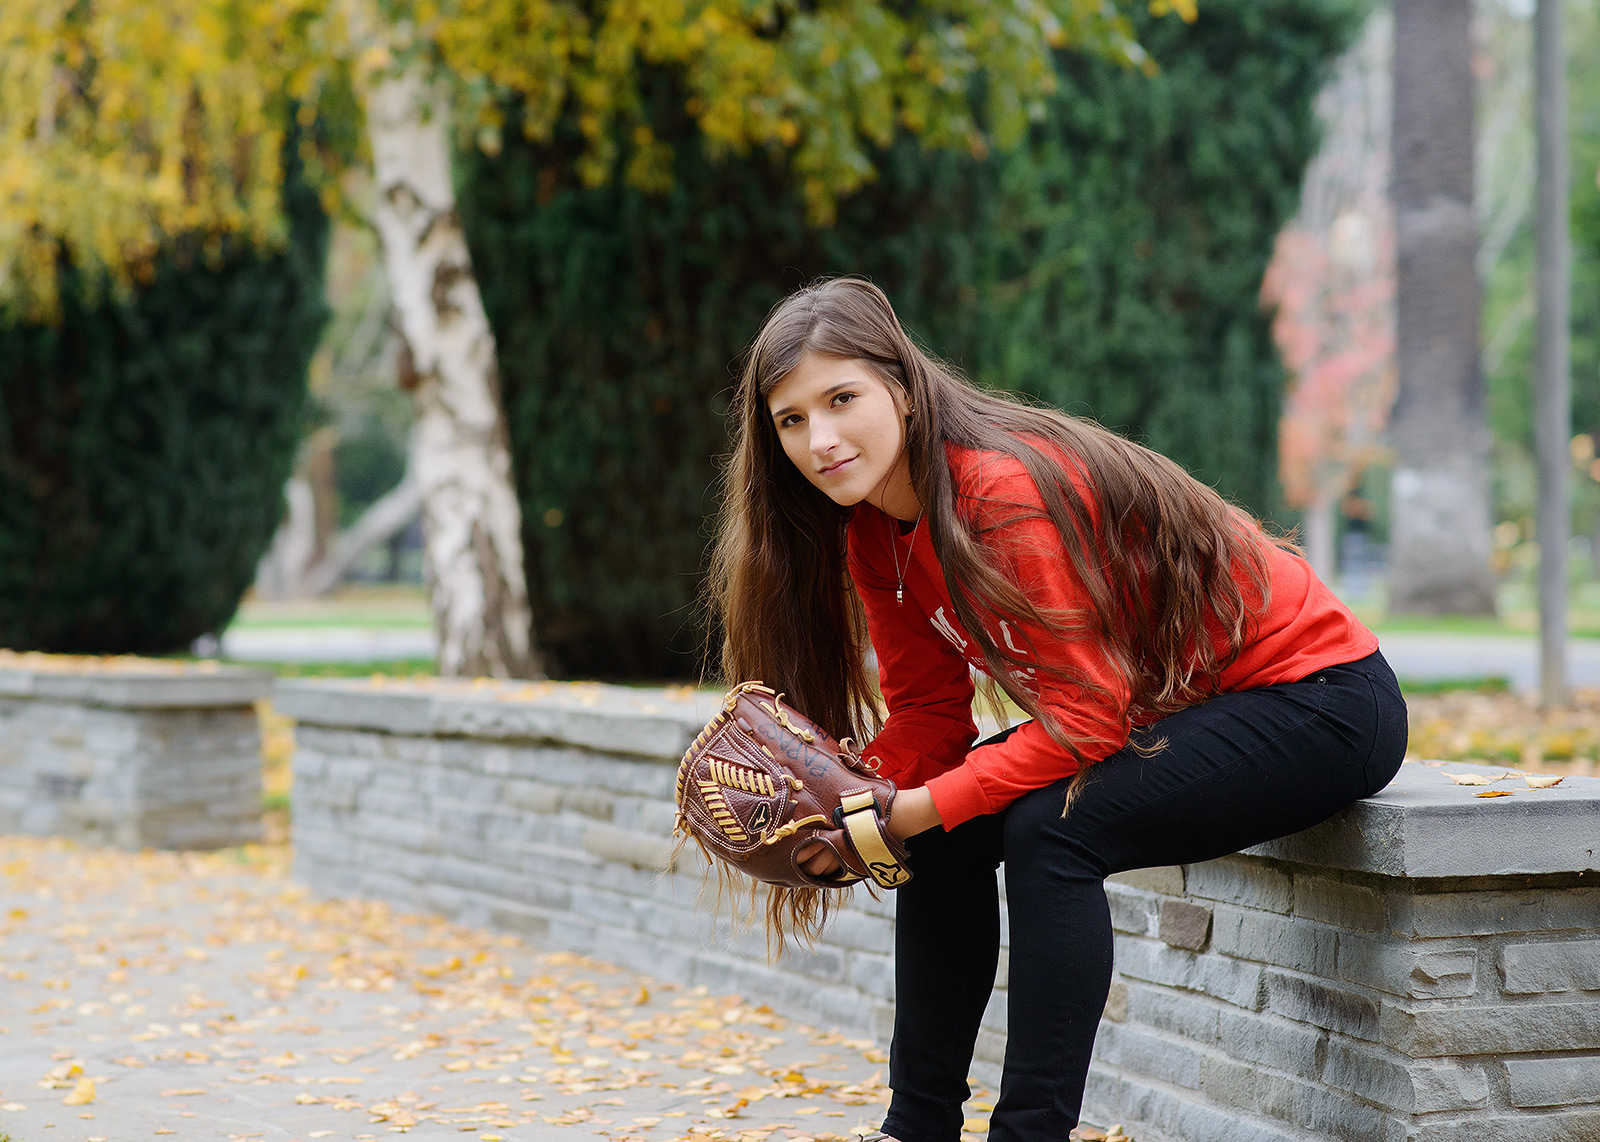 Senior softball player portrait with mitt in Sacramento